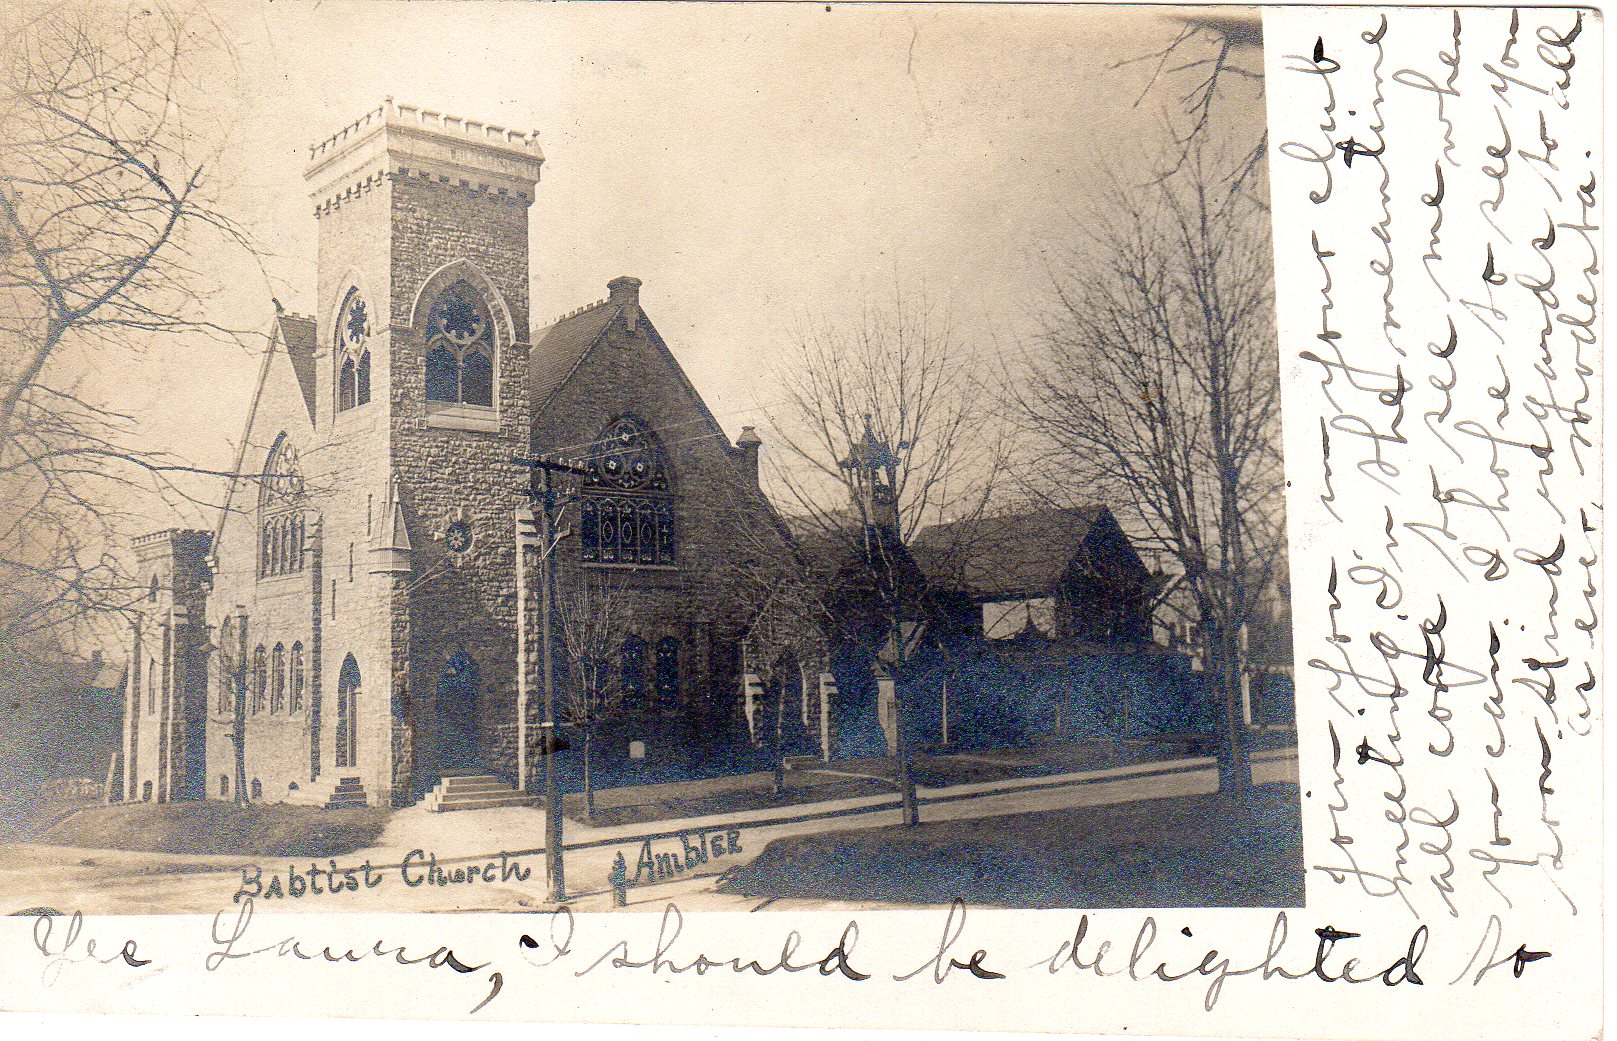 Post Card Collection (E Simon)_2682_26_Mt Pleasant Baptist Church, Ambler, Pa_Sep 1901